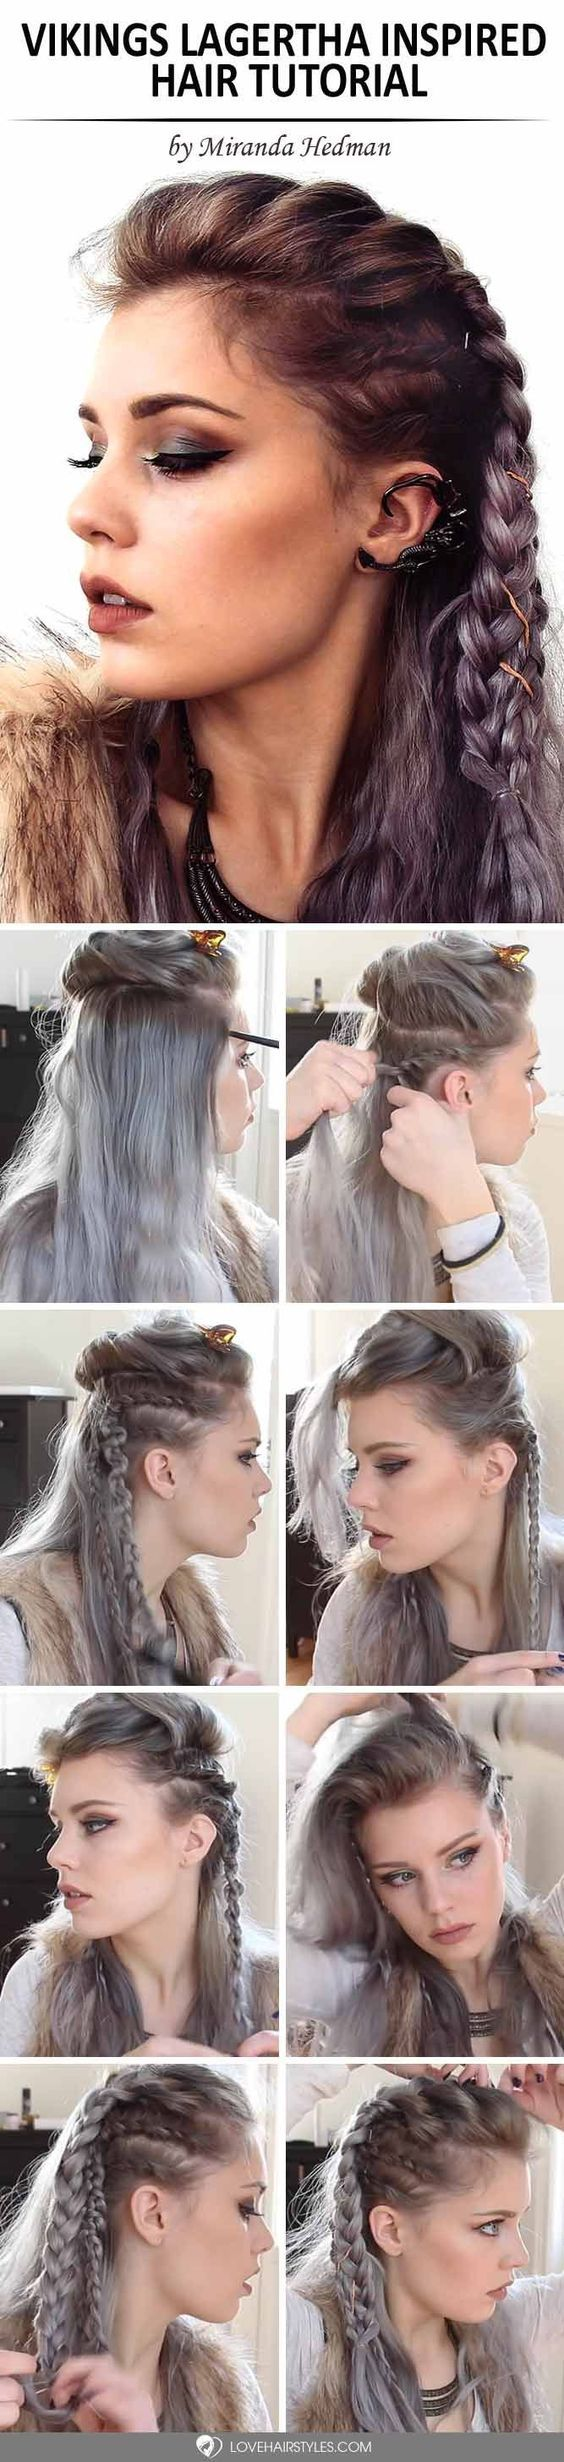 picture of haircut best 25 viking haircut ideas on viking 5346 | a7486e421cac681a26576e5346f01bba